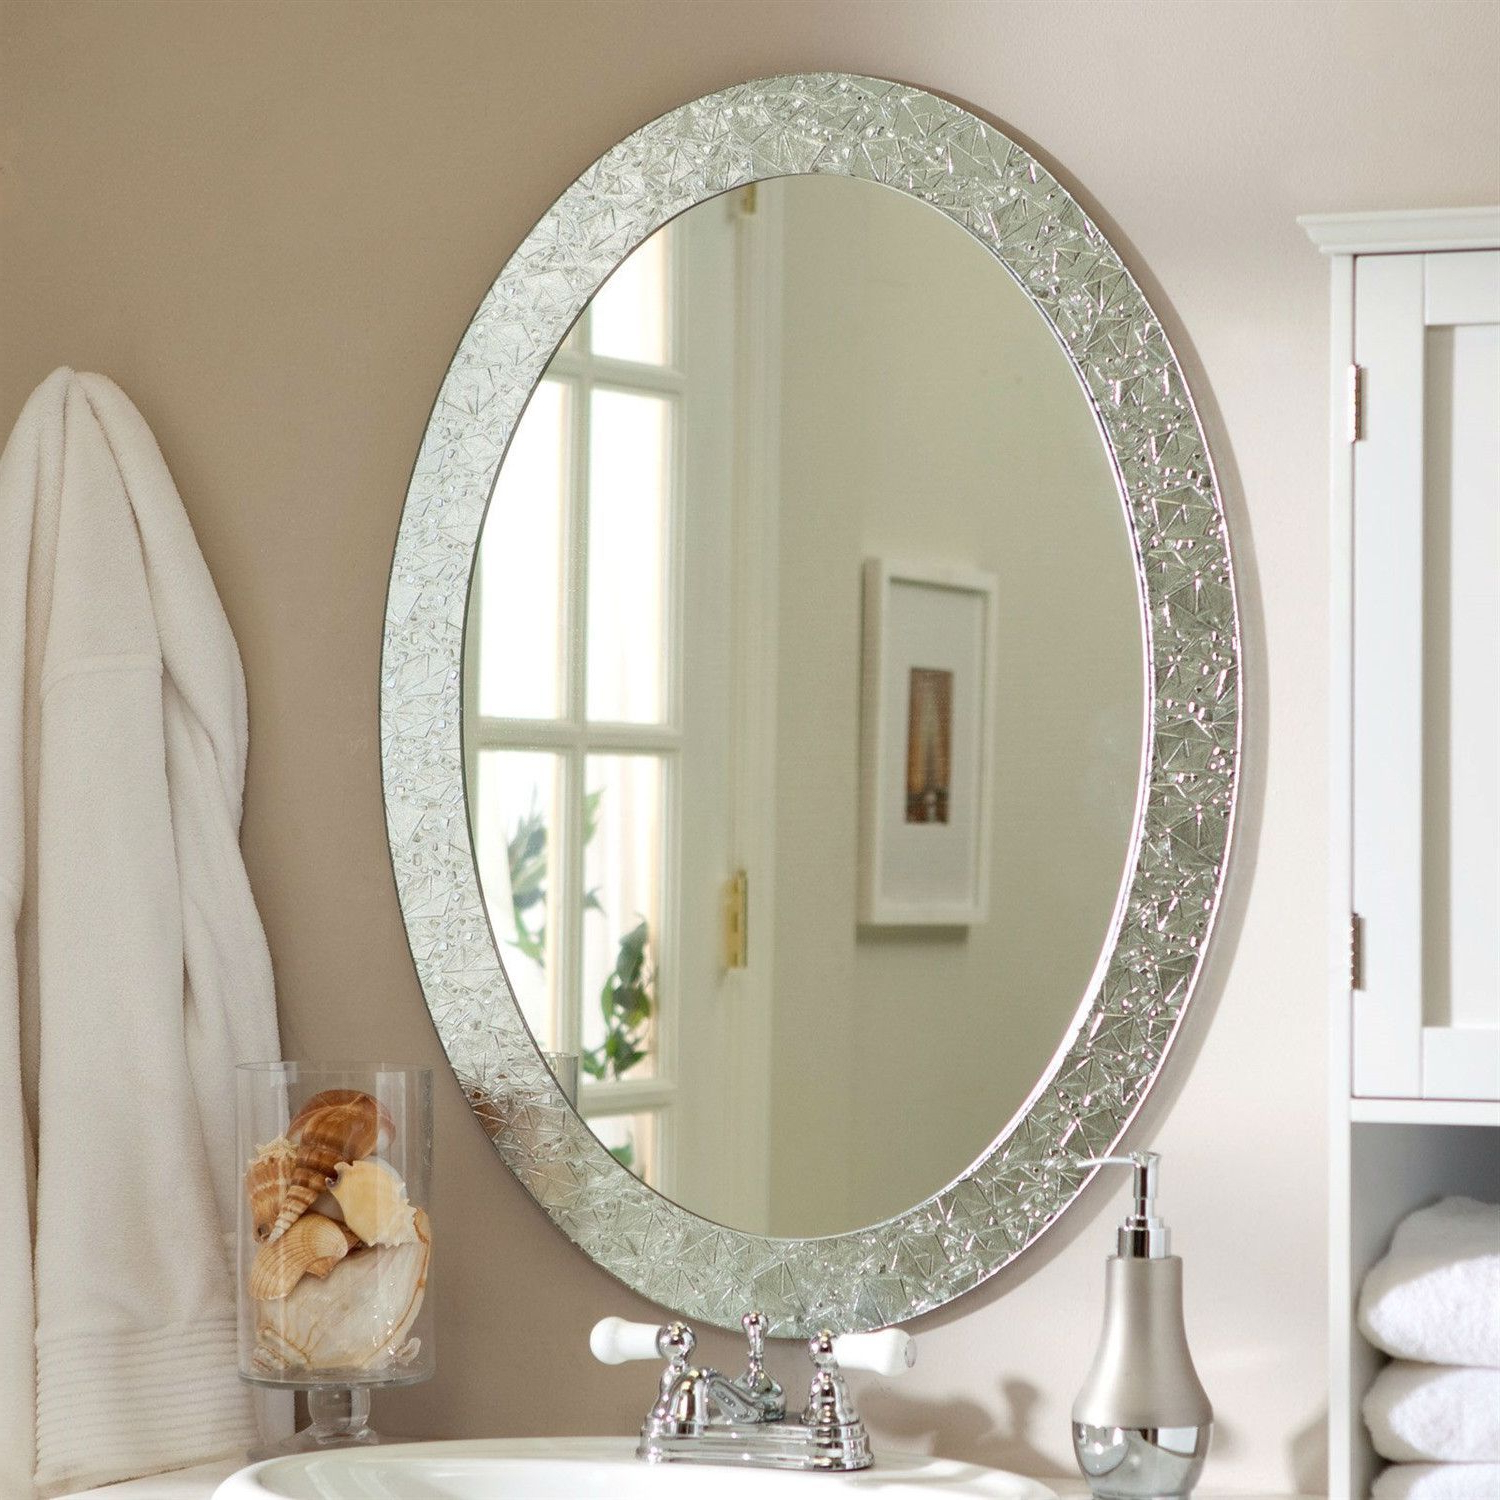 2019 Oval Frame Less Bathroom Vanity Wall Mirror With Elegant Crystal Inside Small Oval Wall Mirrors (View 2 of 20)